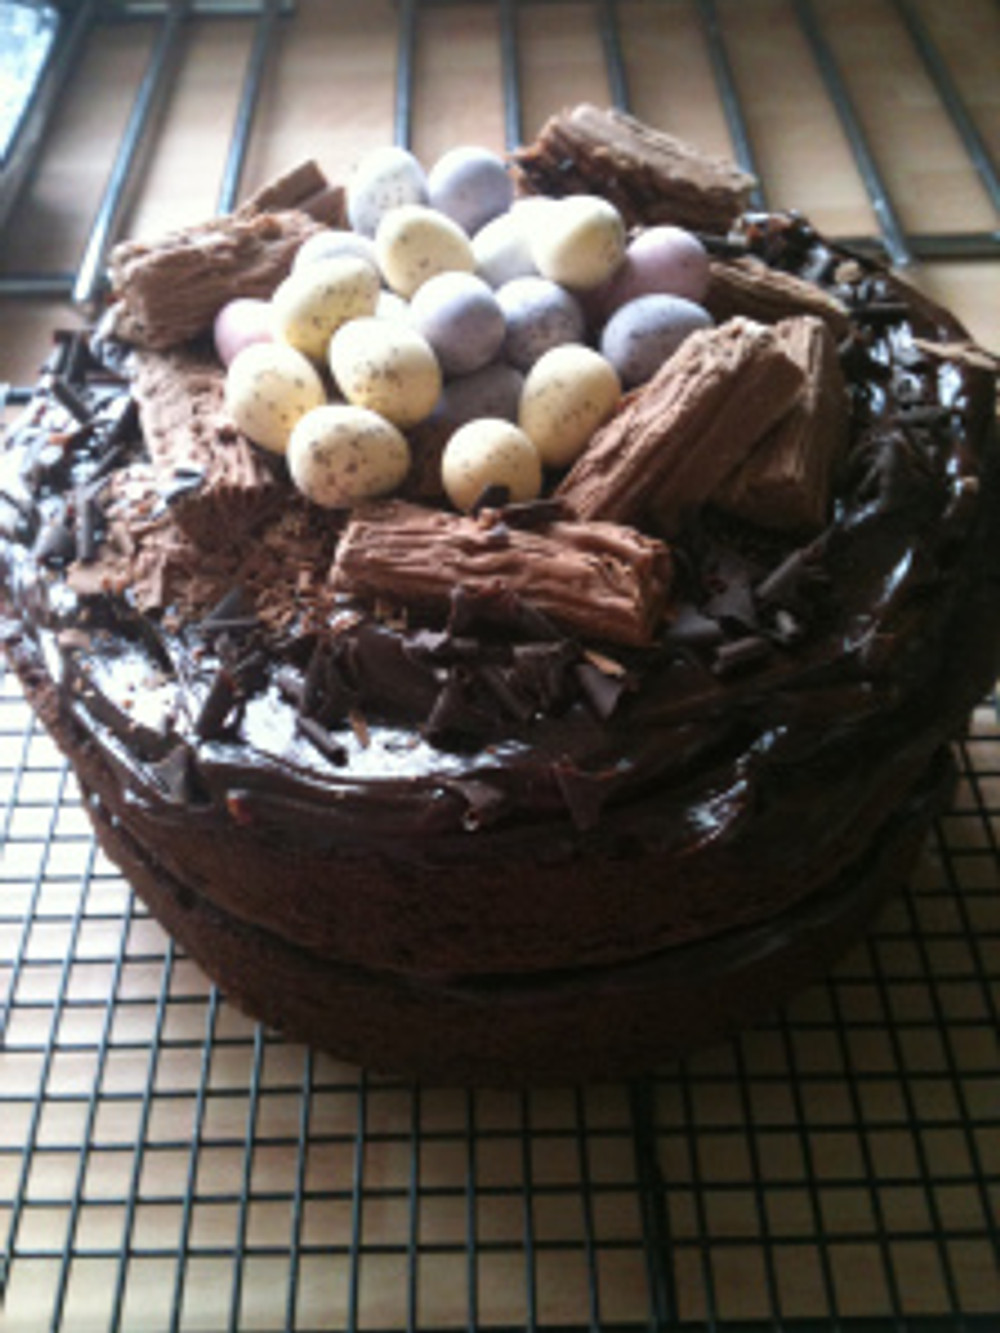 Another version of the Old Fashioned Chocolate Cake, this time I've added Cadbury's Chocolate Flakes and Mini Eggs to look like an Easter nest on top of the cake.